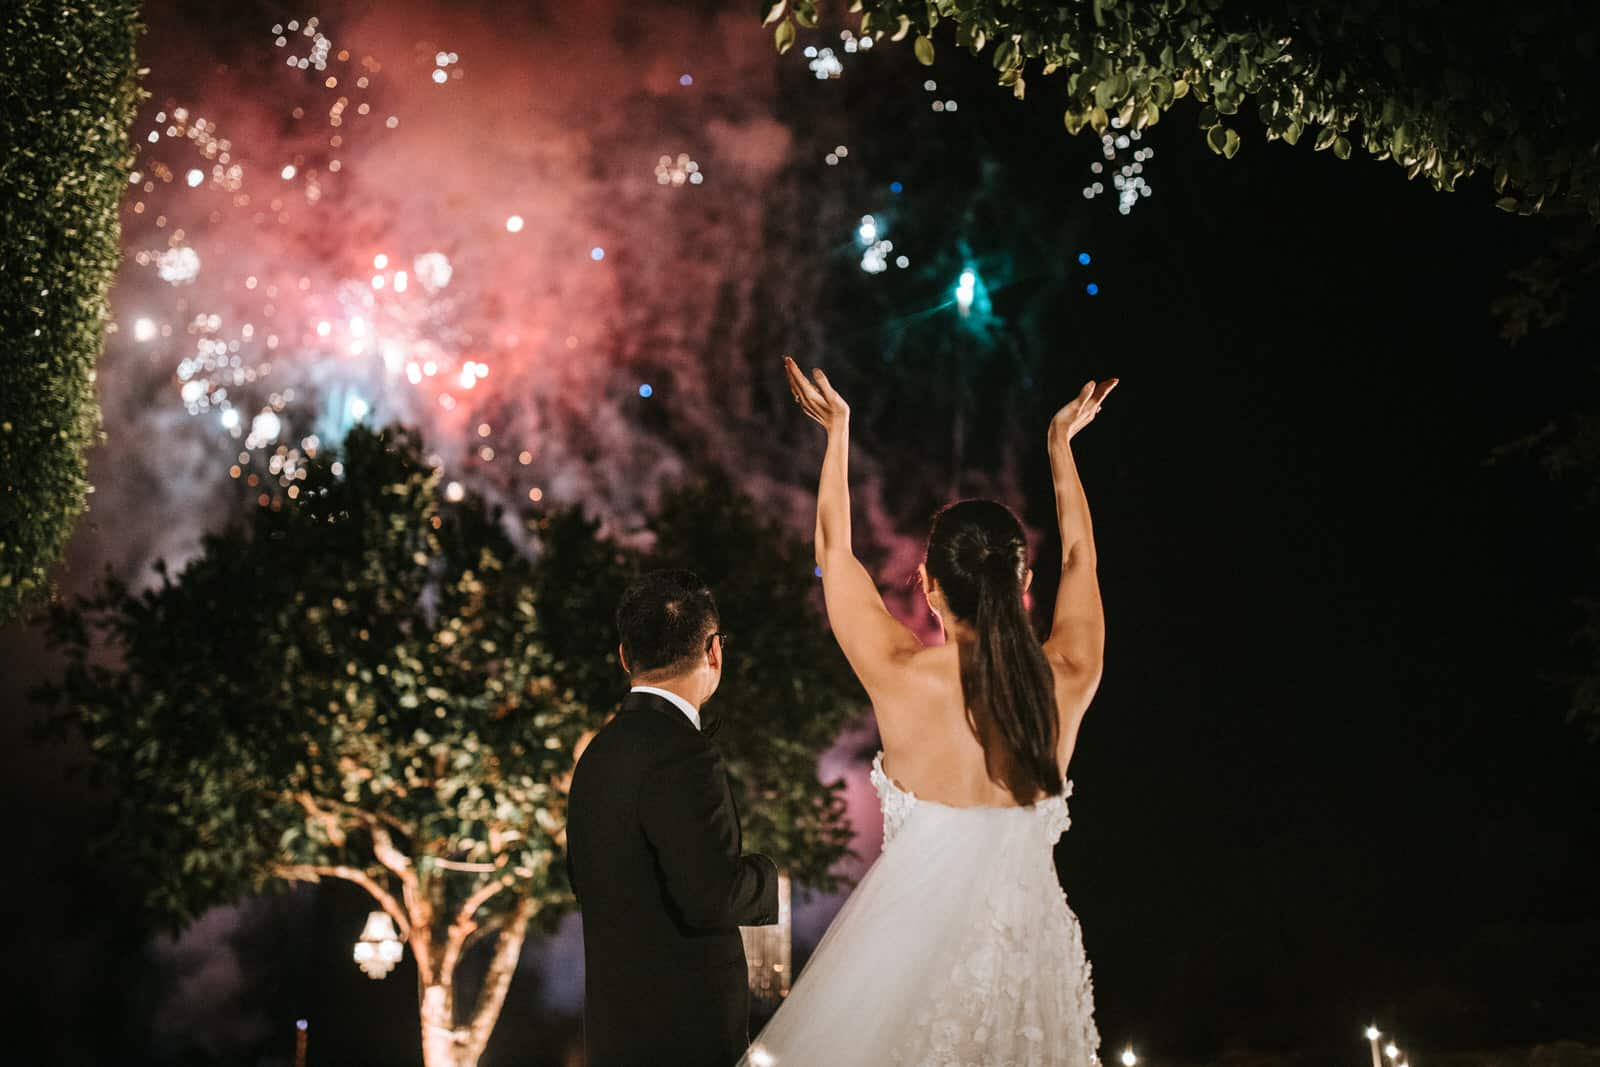 The wedding couple is looking at the firework.